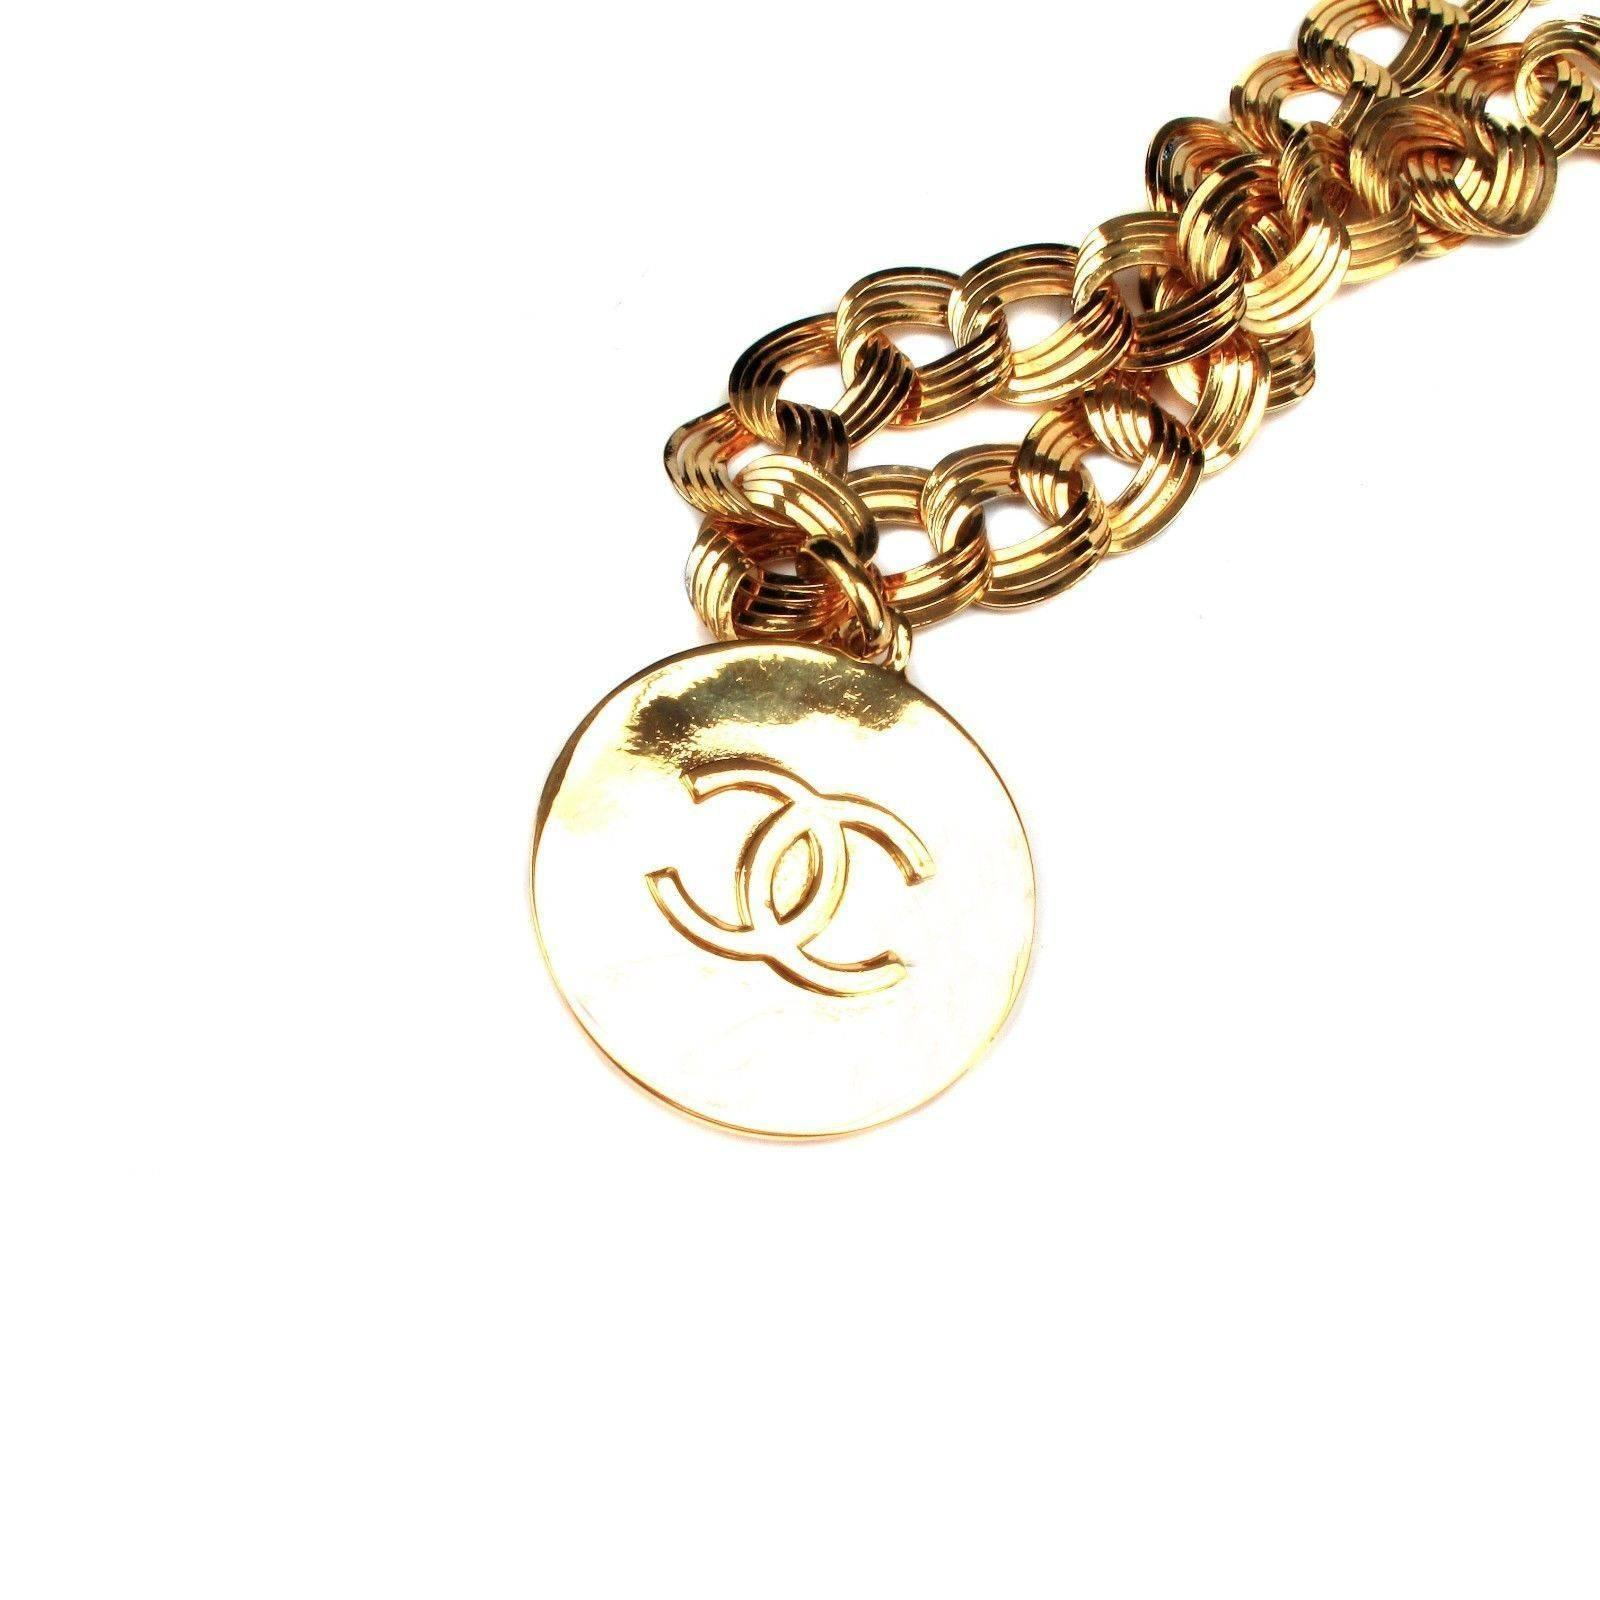 gold loved house pre vintage boutique chain product necklace of tone pendant chanel medallion belt